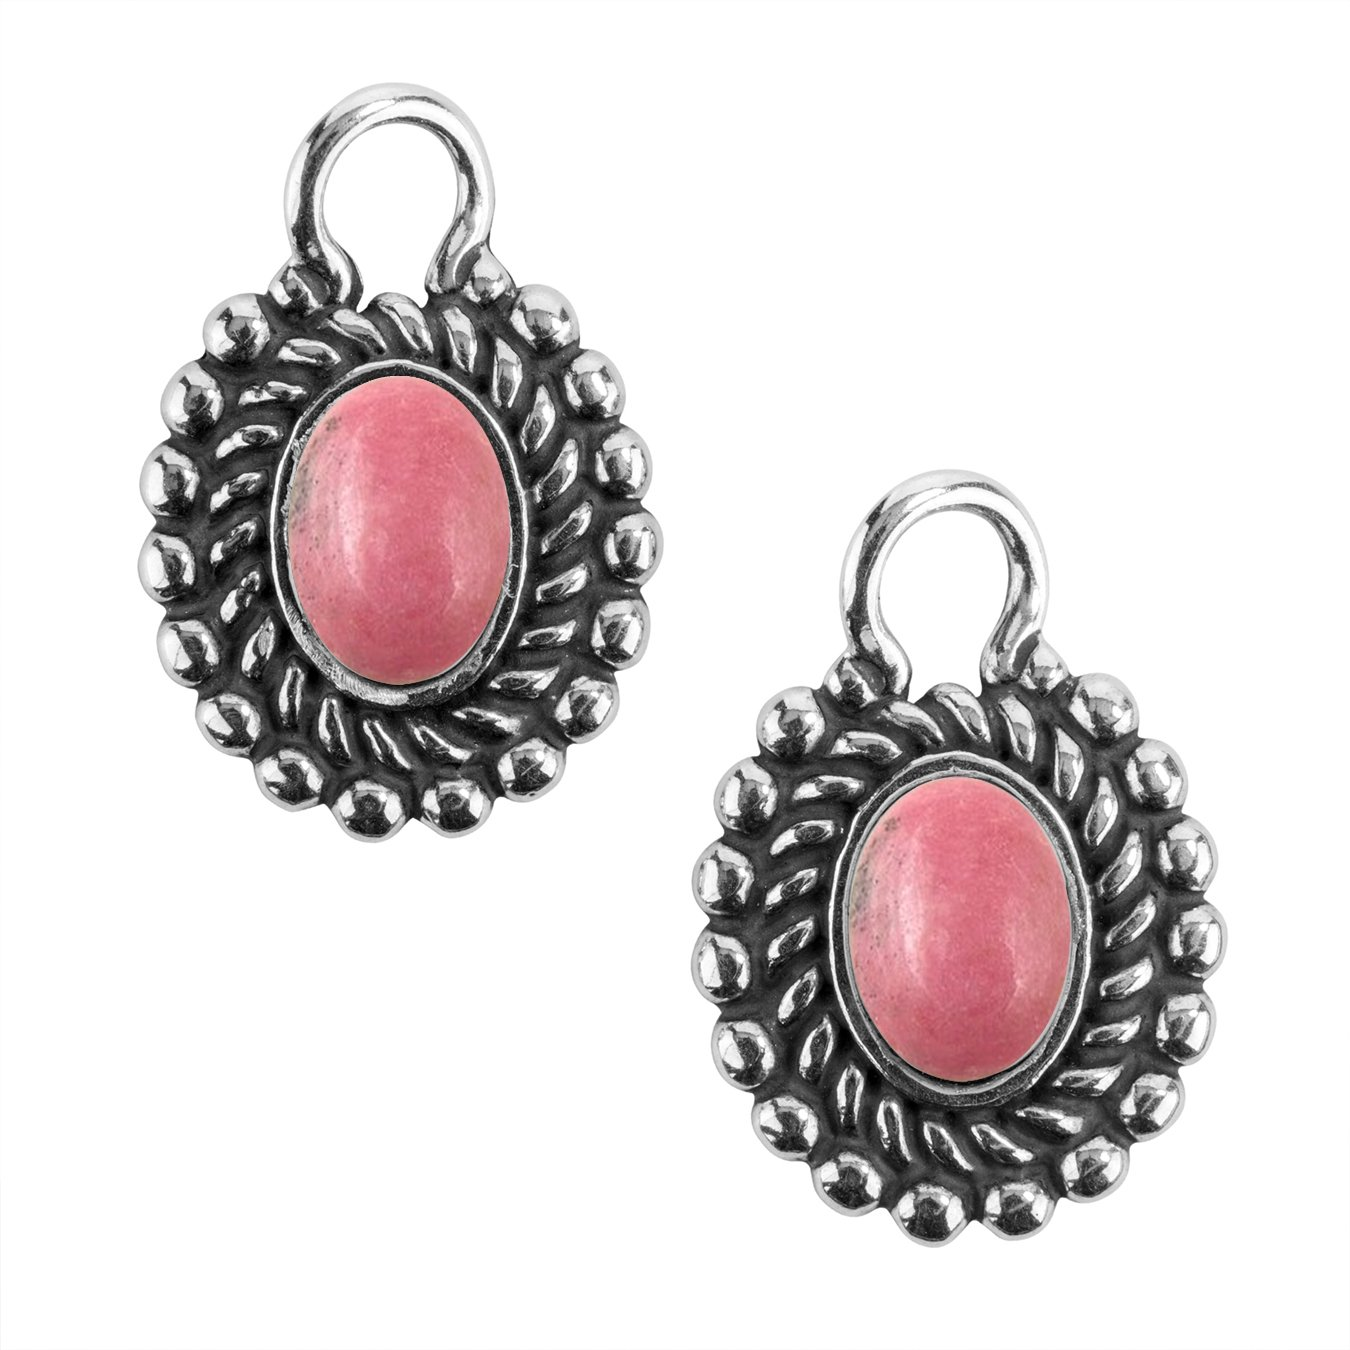 American West - Sterling Silver Pink Rhodonite Concha Earring Drop Set - Treasures Collection